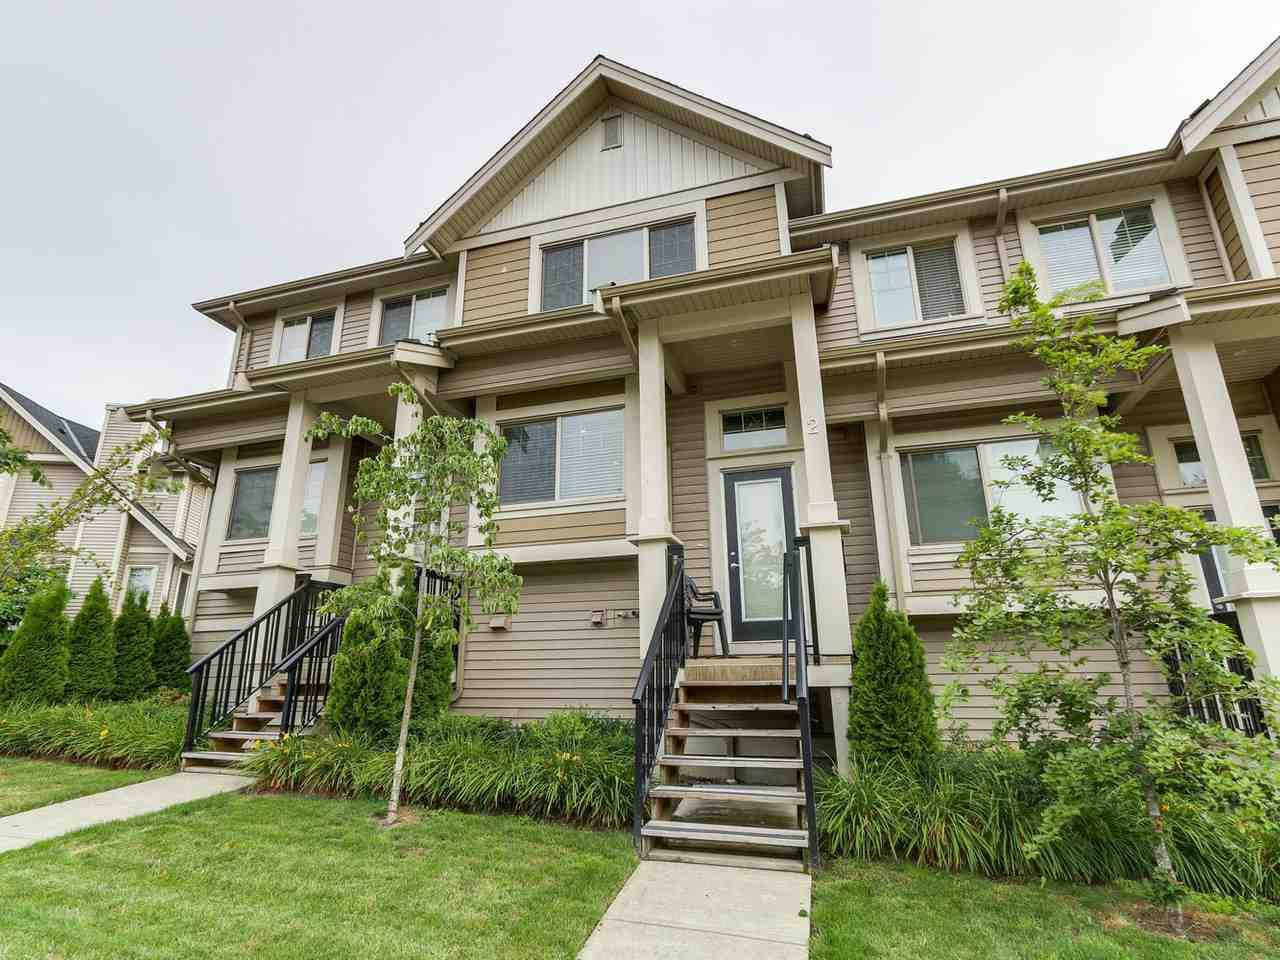 Main Photo: 2 19097 64 AVENUE in Surrey: Cloverdale BC Townhouse for sale (Cloverdale)  : MLS®# R2466274